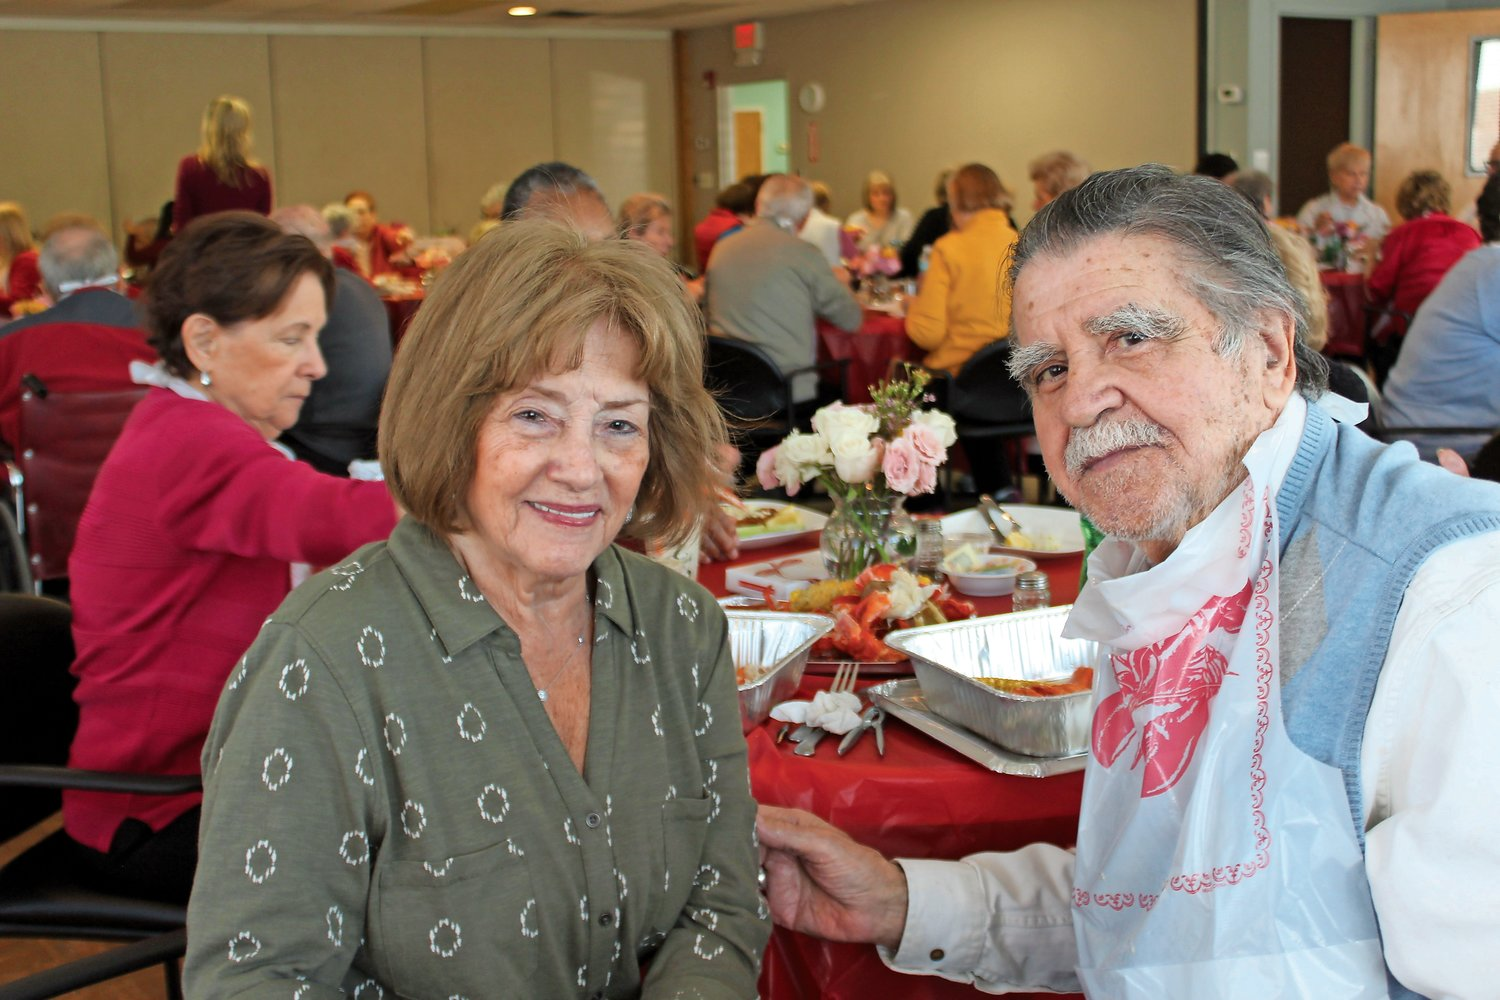 Lilly Carroll and Cass Pena, who have been dating for seven years after meeting at the Sandel Center, enjoyed the Valentine's Day lobster lunch.